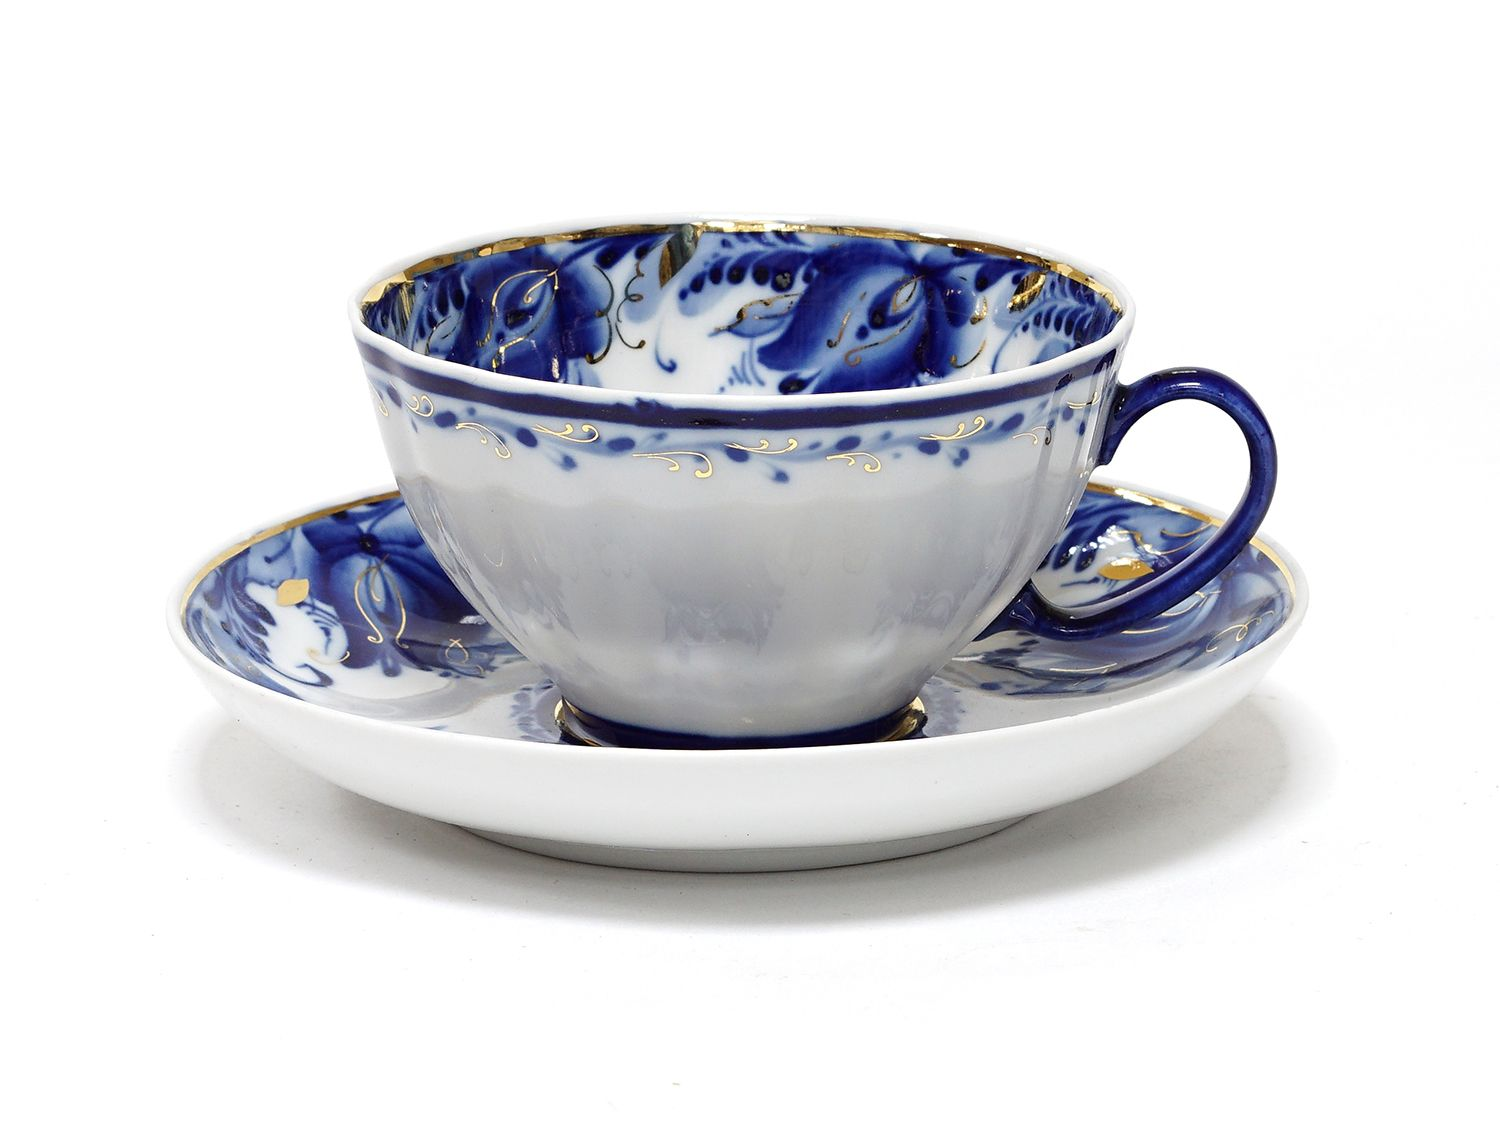 Dulevo porcelain / Tea cup and saucer set, 12 pcs., 275 ml White swan Blue tulips Gold